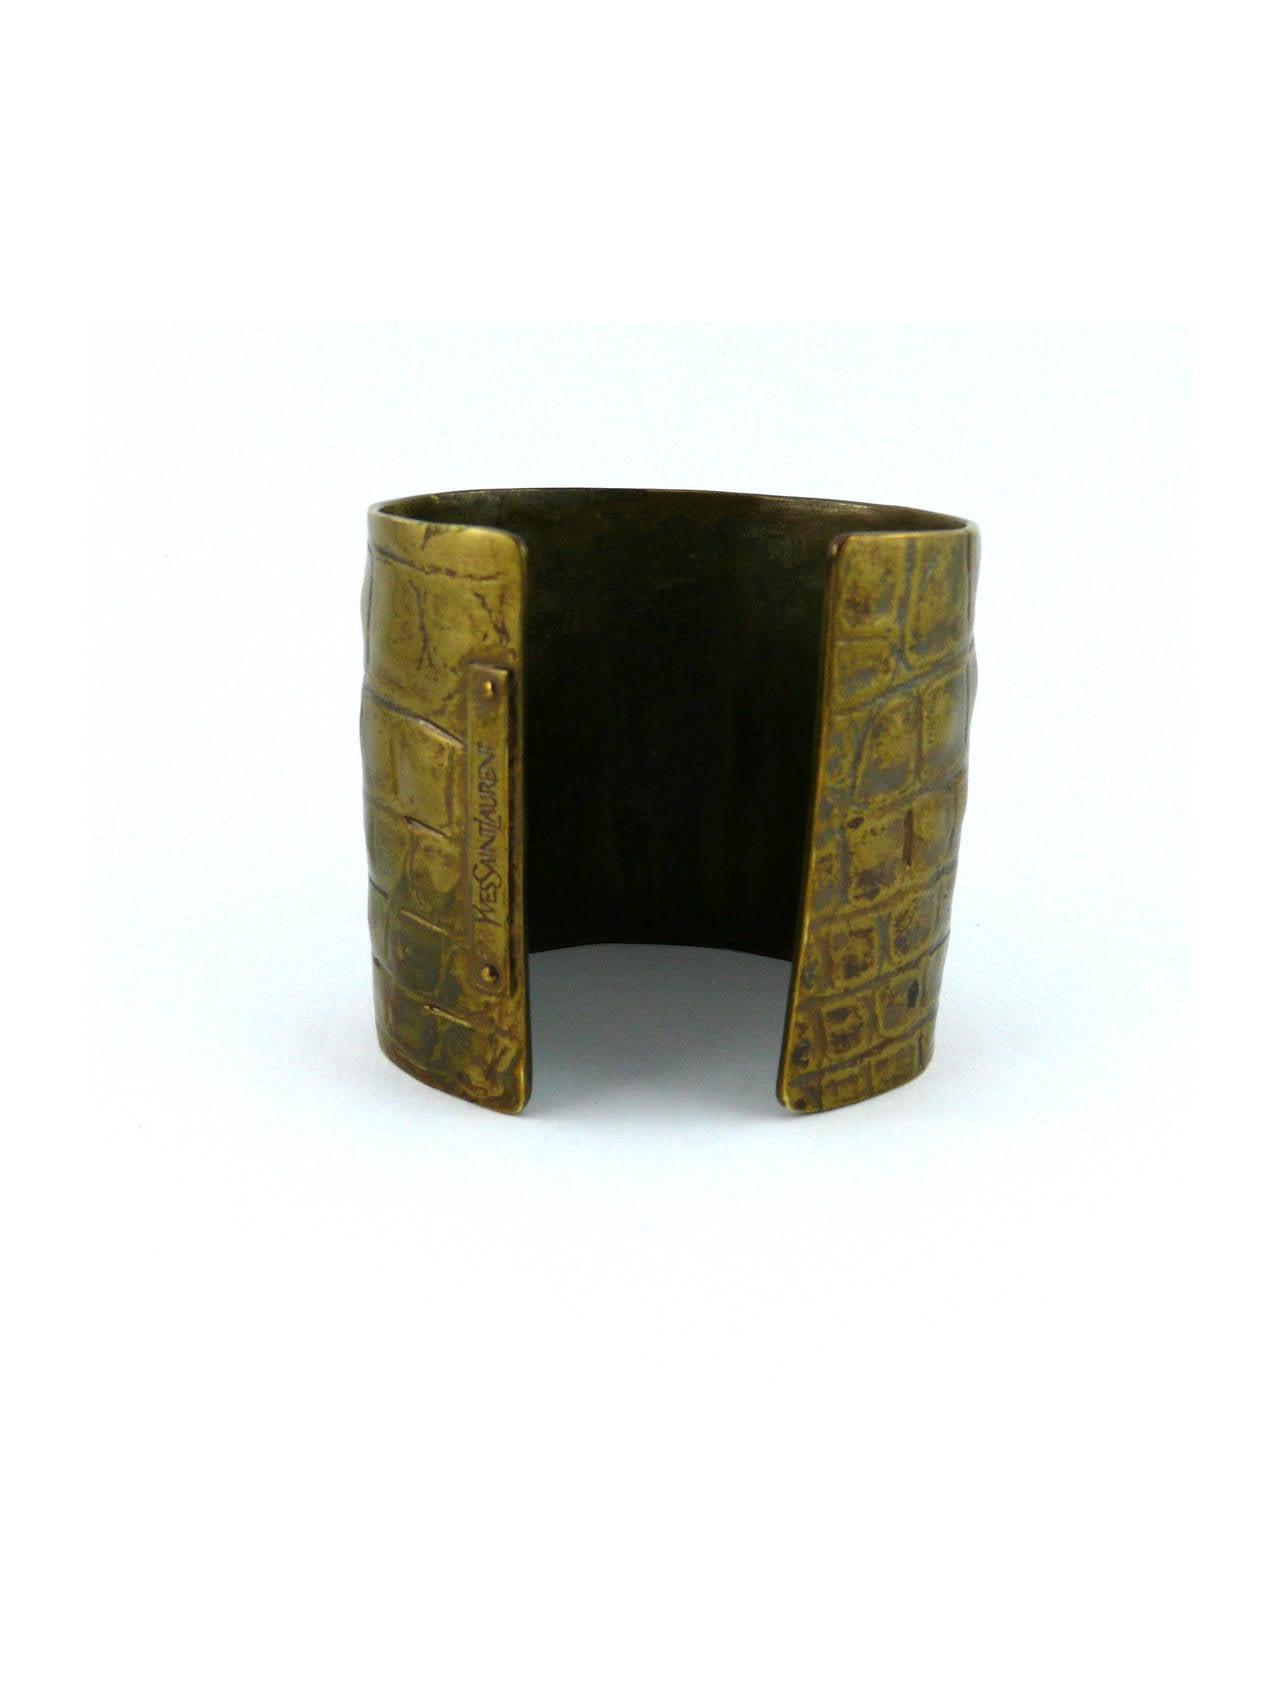 Yves Saint Laurent YSL by Tom Ford Croc-Embossed Cuff Bracelet For Sale 4